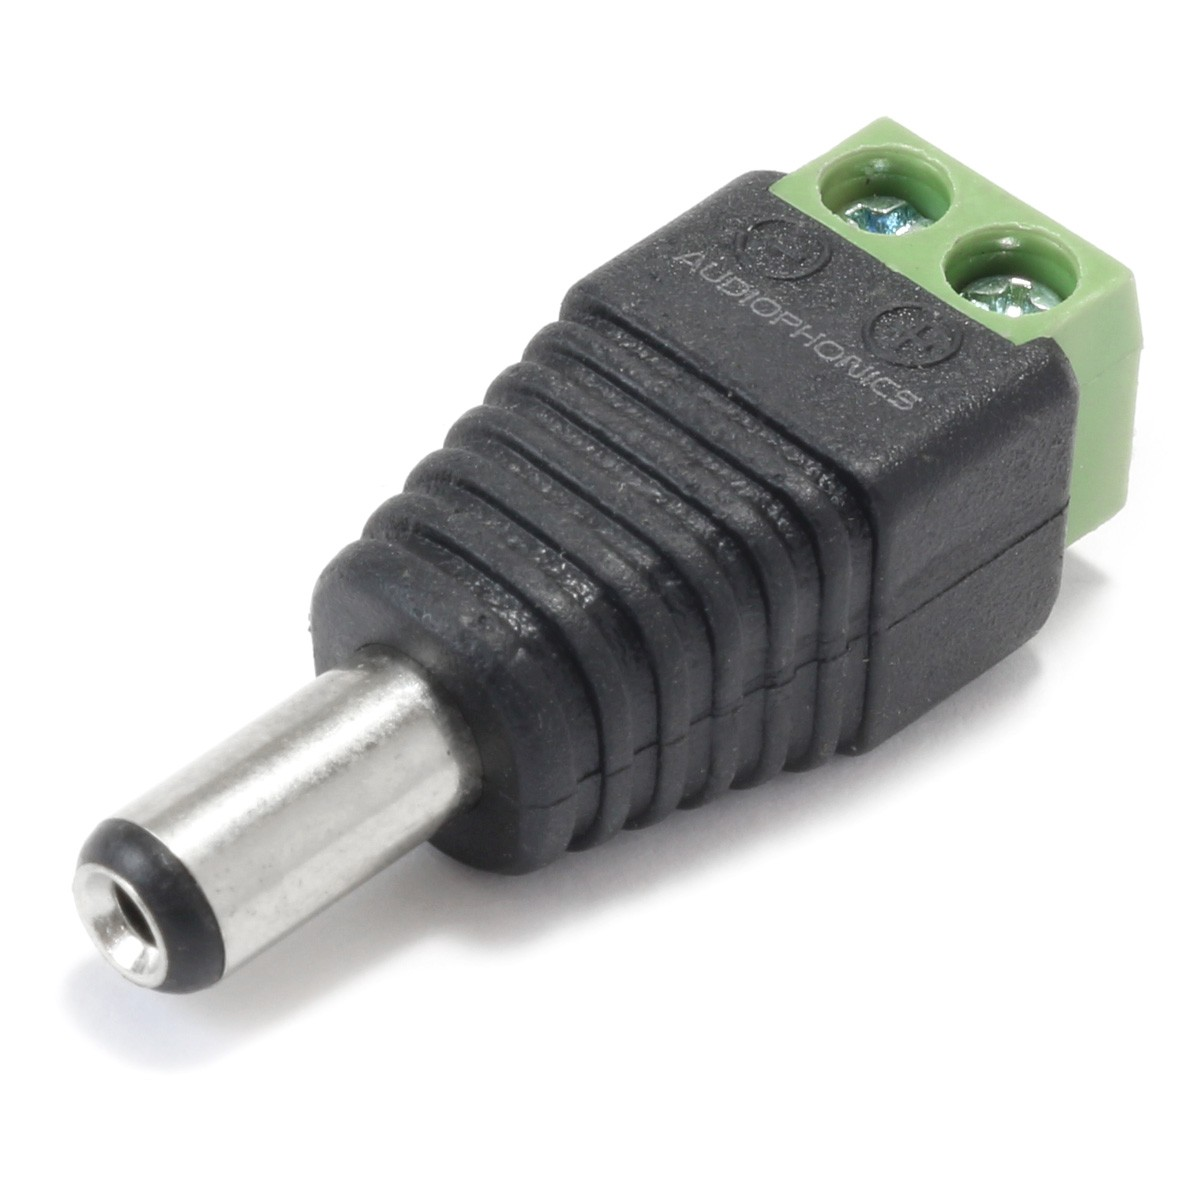 Male Jack DC 5.5 / 2.1mm to Screw Terminals Adapter